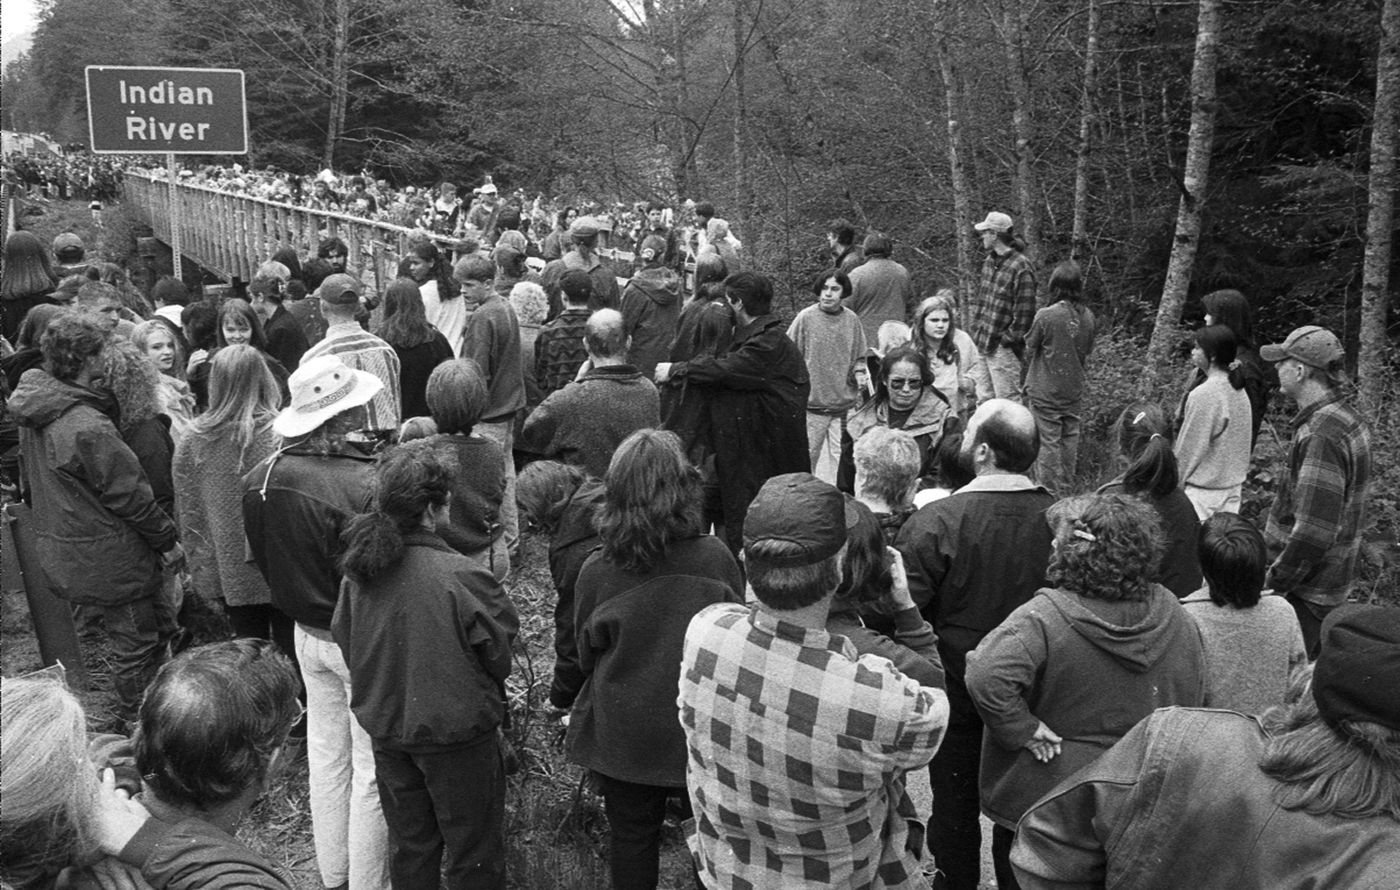 About 1,500 people turned out on May 12, 1996, for a walk through Sitka National Historical Park in memory of Jessica Baggen. (Daily Sitka Sentinal file photo by Reber Stein)